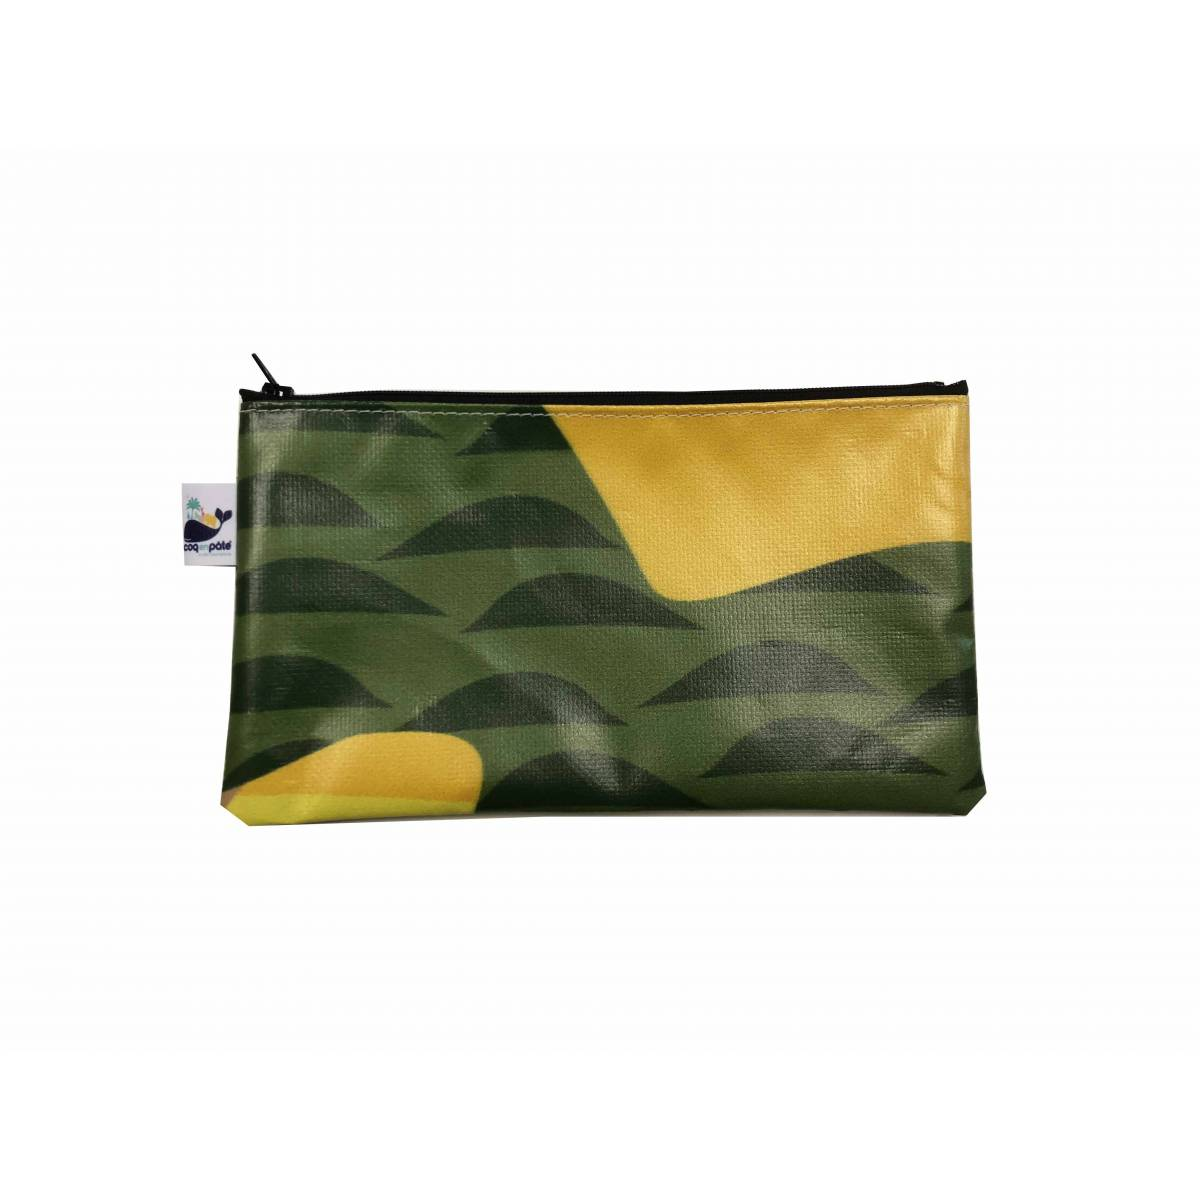 Pencil case - Limited Edition n°32/40